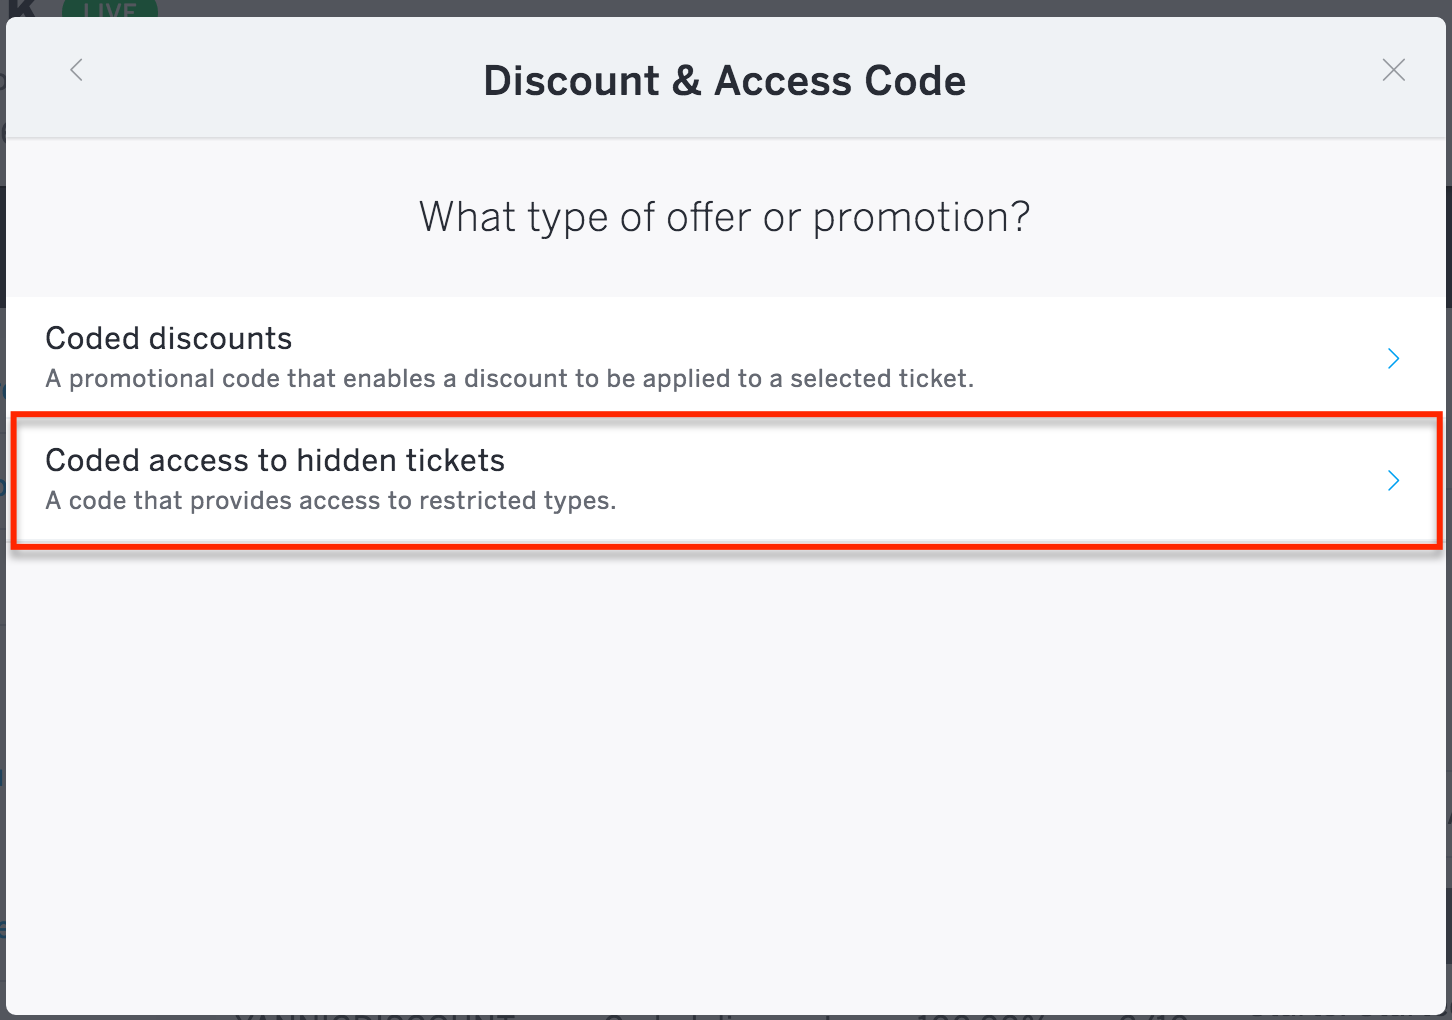 How To Set Up Access Codes For Hidden Tickets For One Or Multiple